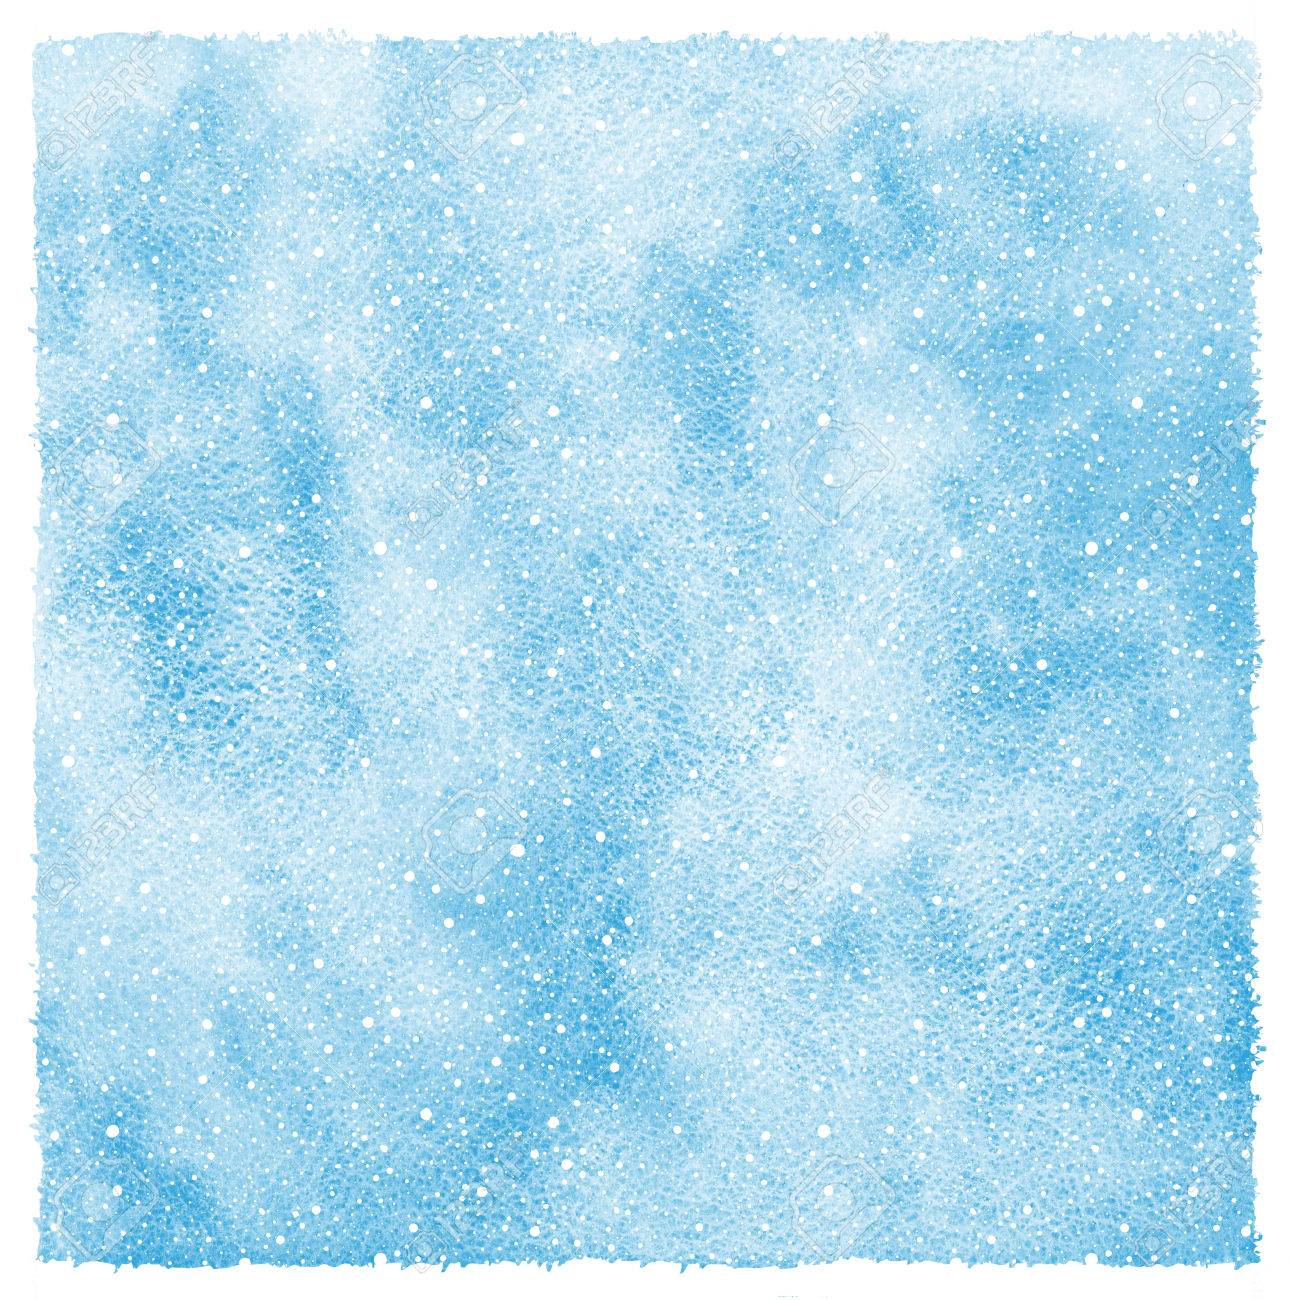 winter watercolor abstract background with falling snow splash